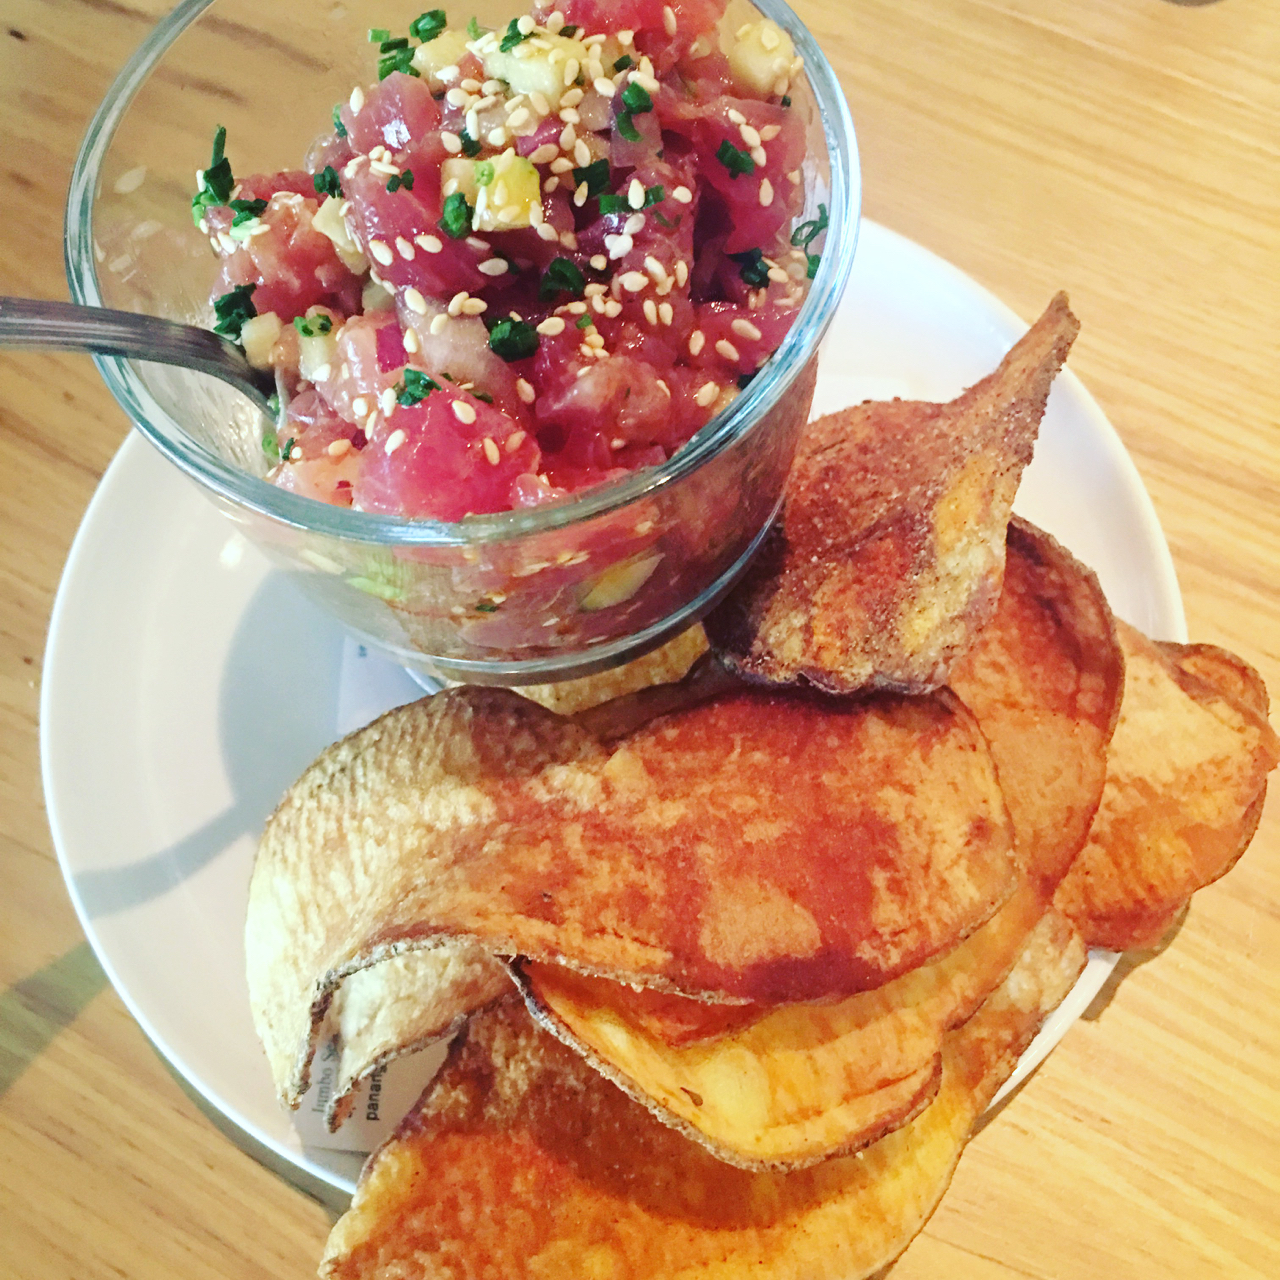 AHI POKE WITH APPLES AND SWEET POTATO CHIPS